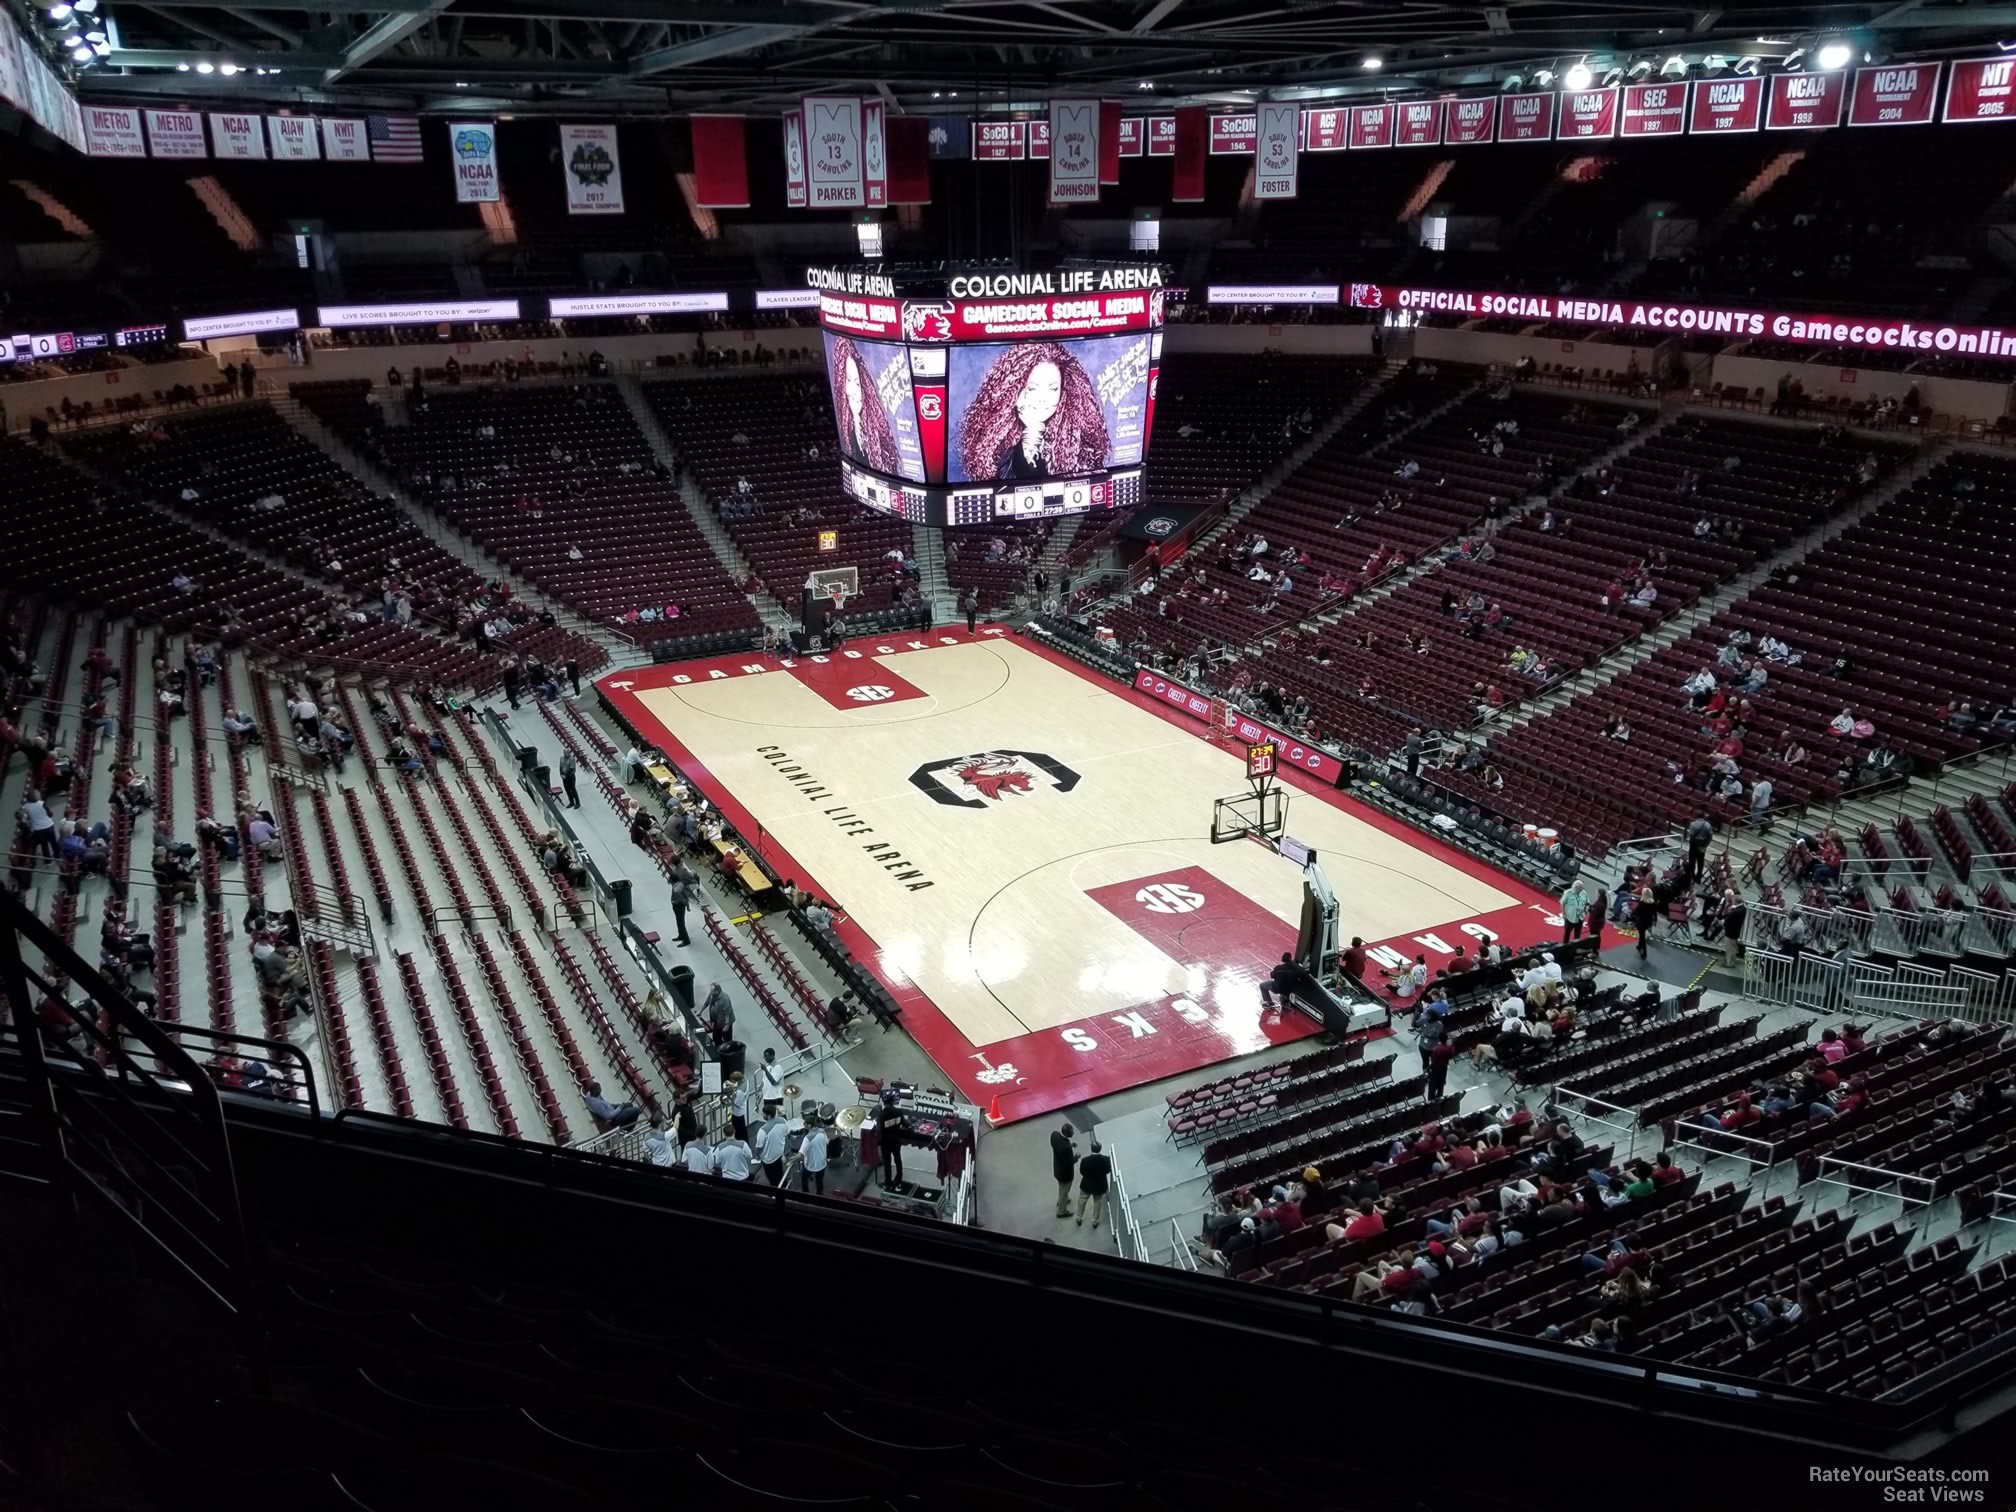 Seat View for Colonial Life Arena Section 217, Row 7